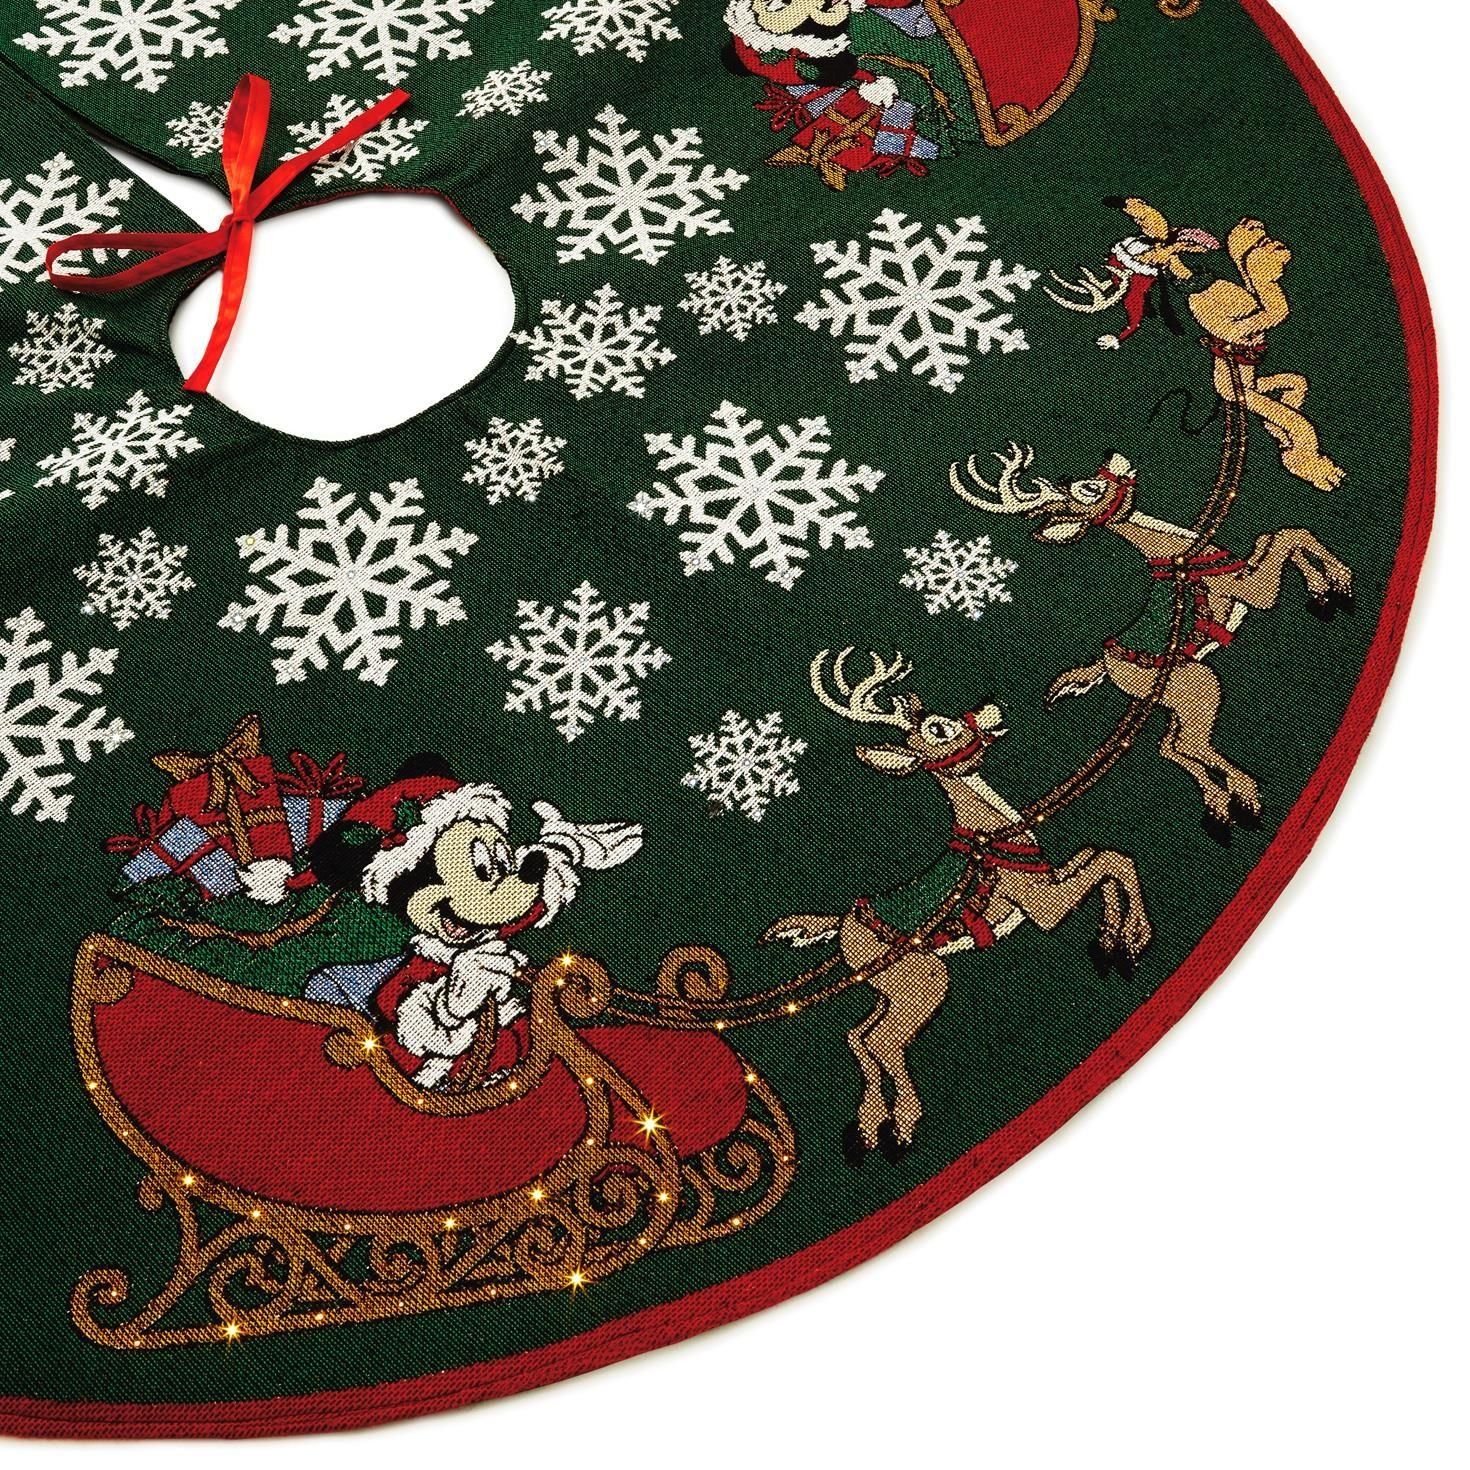 Hallmark Mickey Mouse Oh, What Fun! Tree Skirt with Light by Hallmark (Image #2)